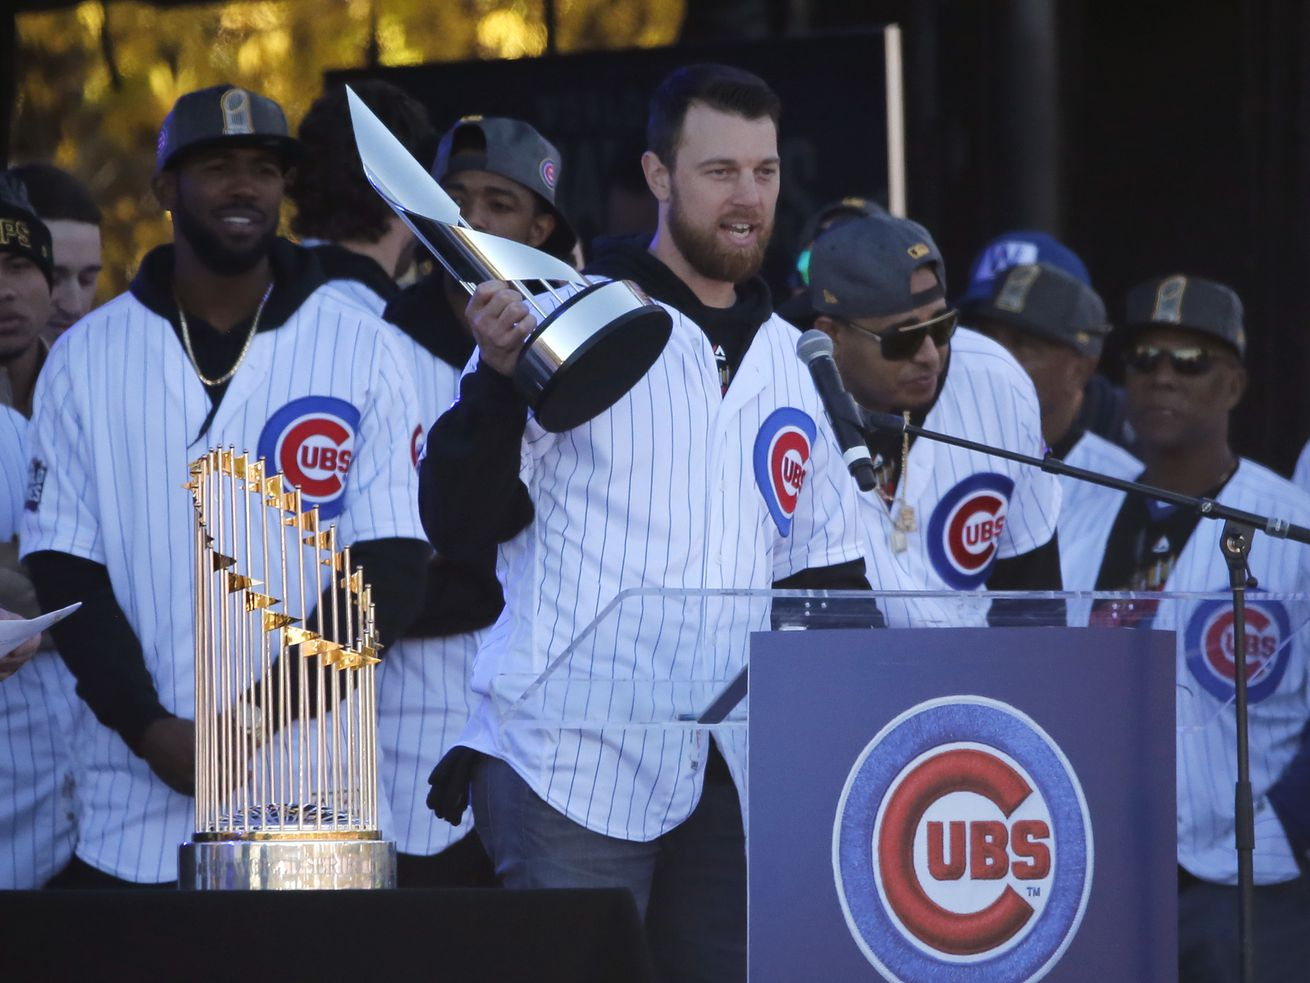 Ben Zobrist holds up the World Series MVP trophy during the Cubs' World Series celebration at Grant Park in 2016.